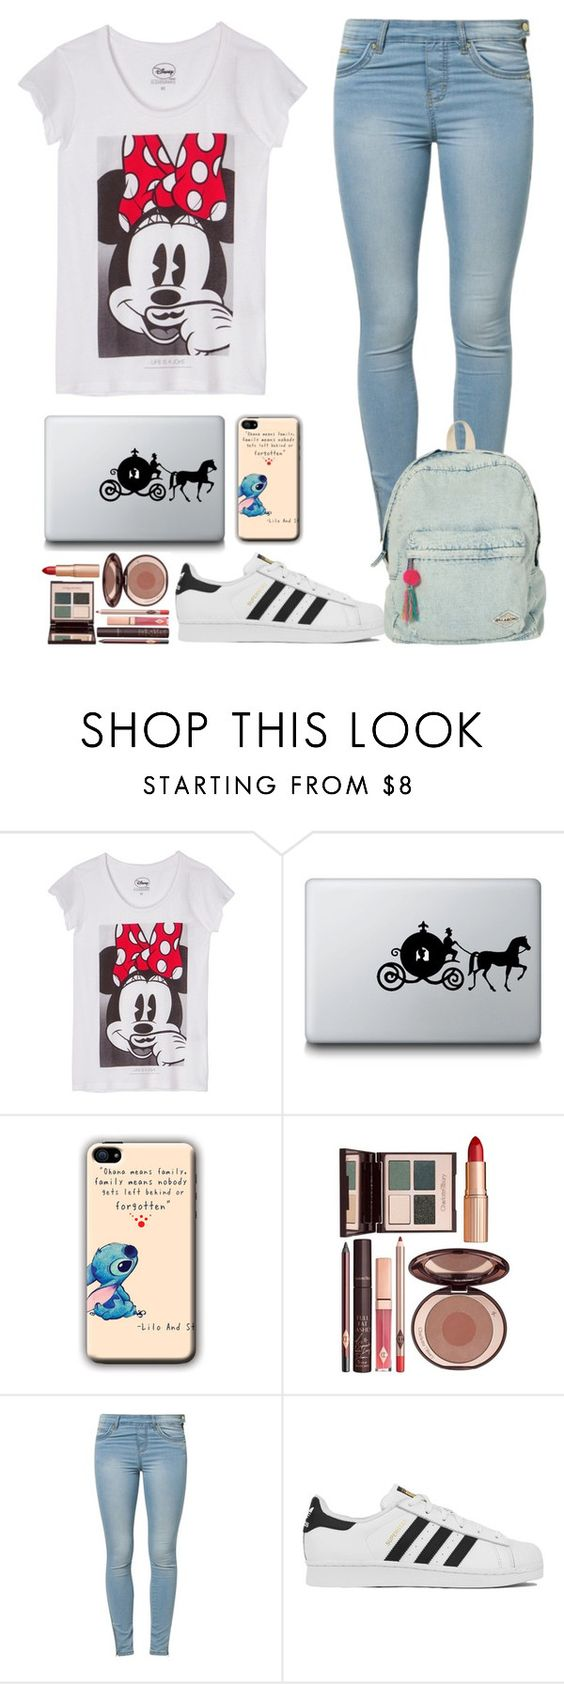 """""""Disney Mode"""" by caro3302 ❤ liked on Polyvore featuring ElevenParis, Disney, Charlotte Tilbury, Jane Norman, adidas, Billabong, women's clothing, women, female and woman"""